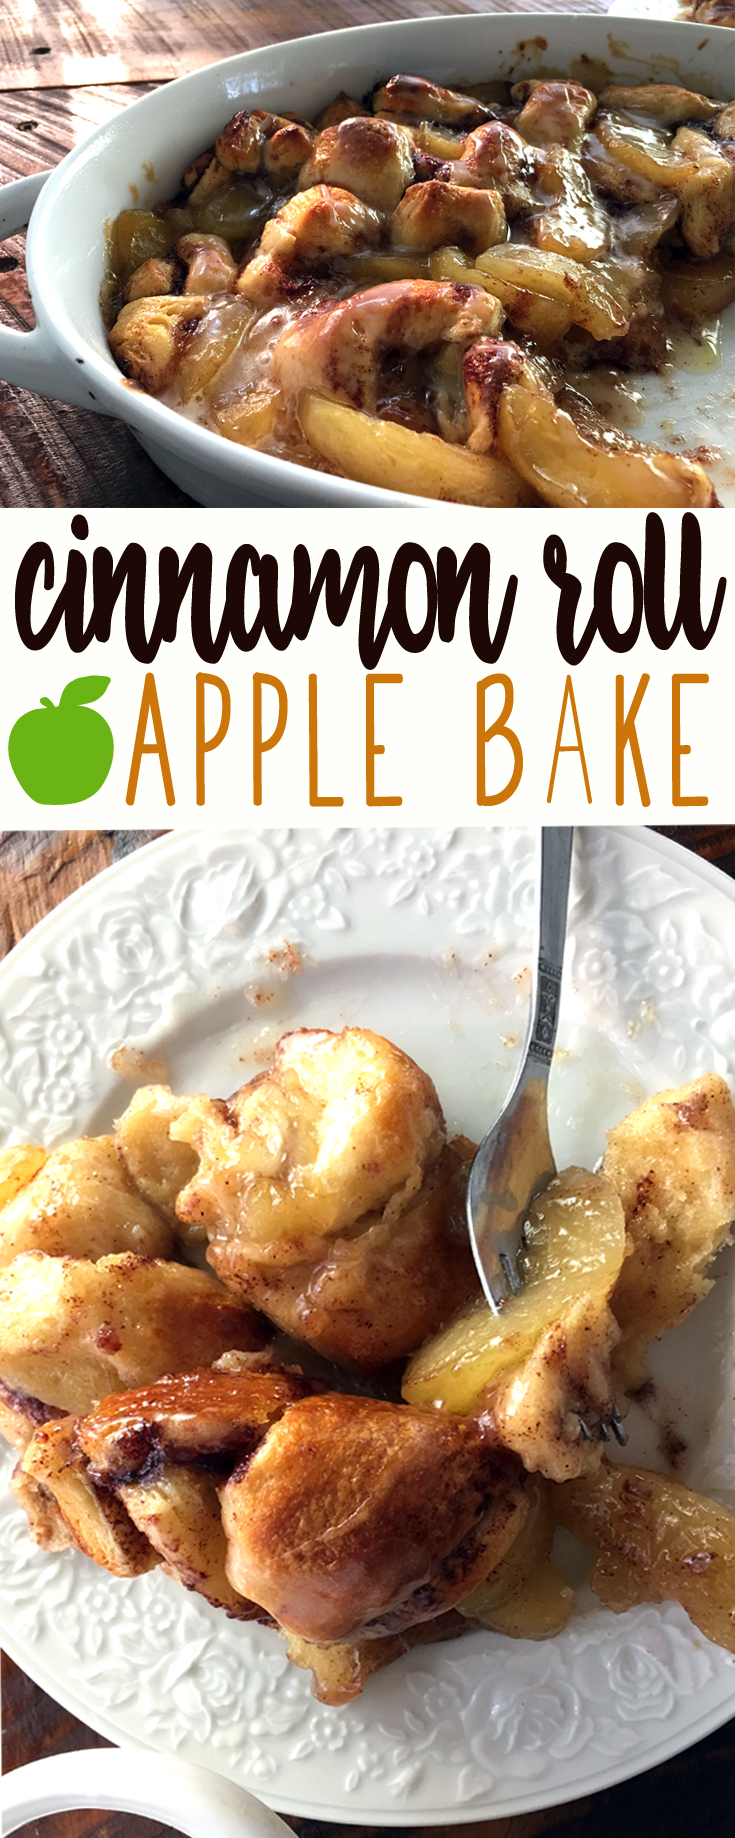 You are going to love this two-ingredient recipe for Cinnamon Roll Apple Bake. Yes, you heard me correctly, TWO INGREDIENTS.